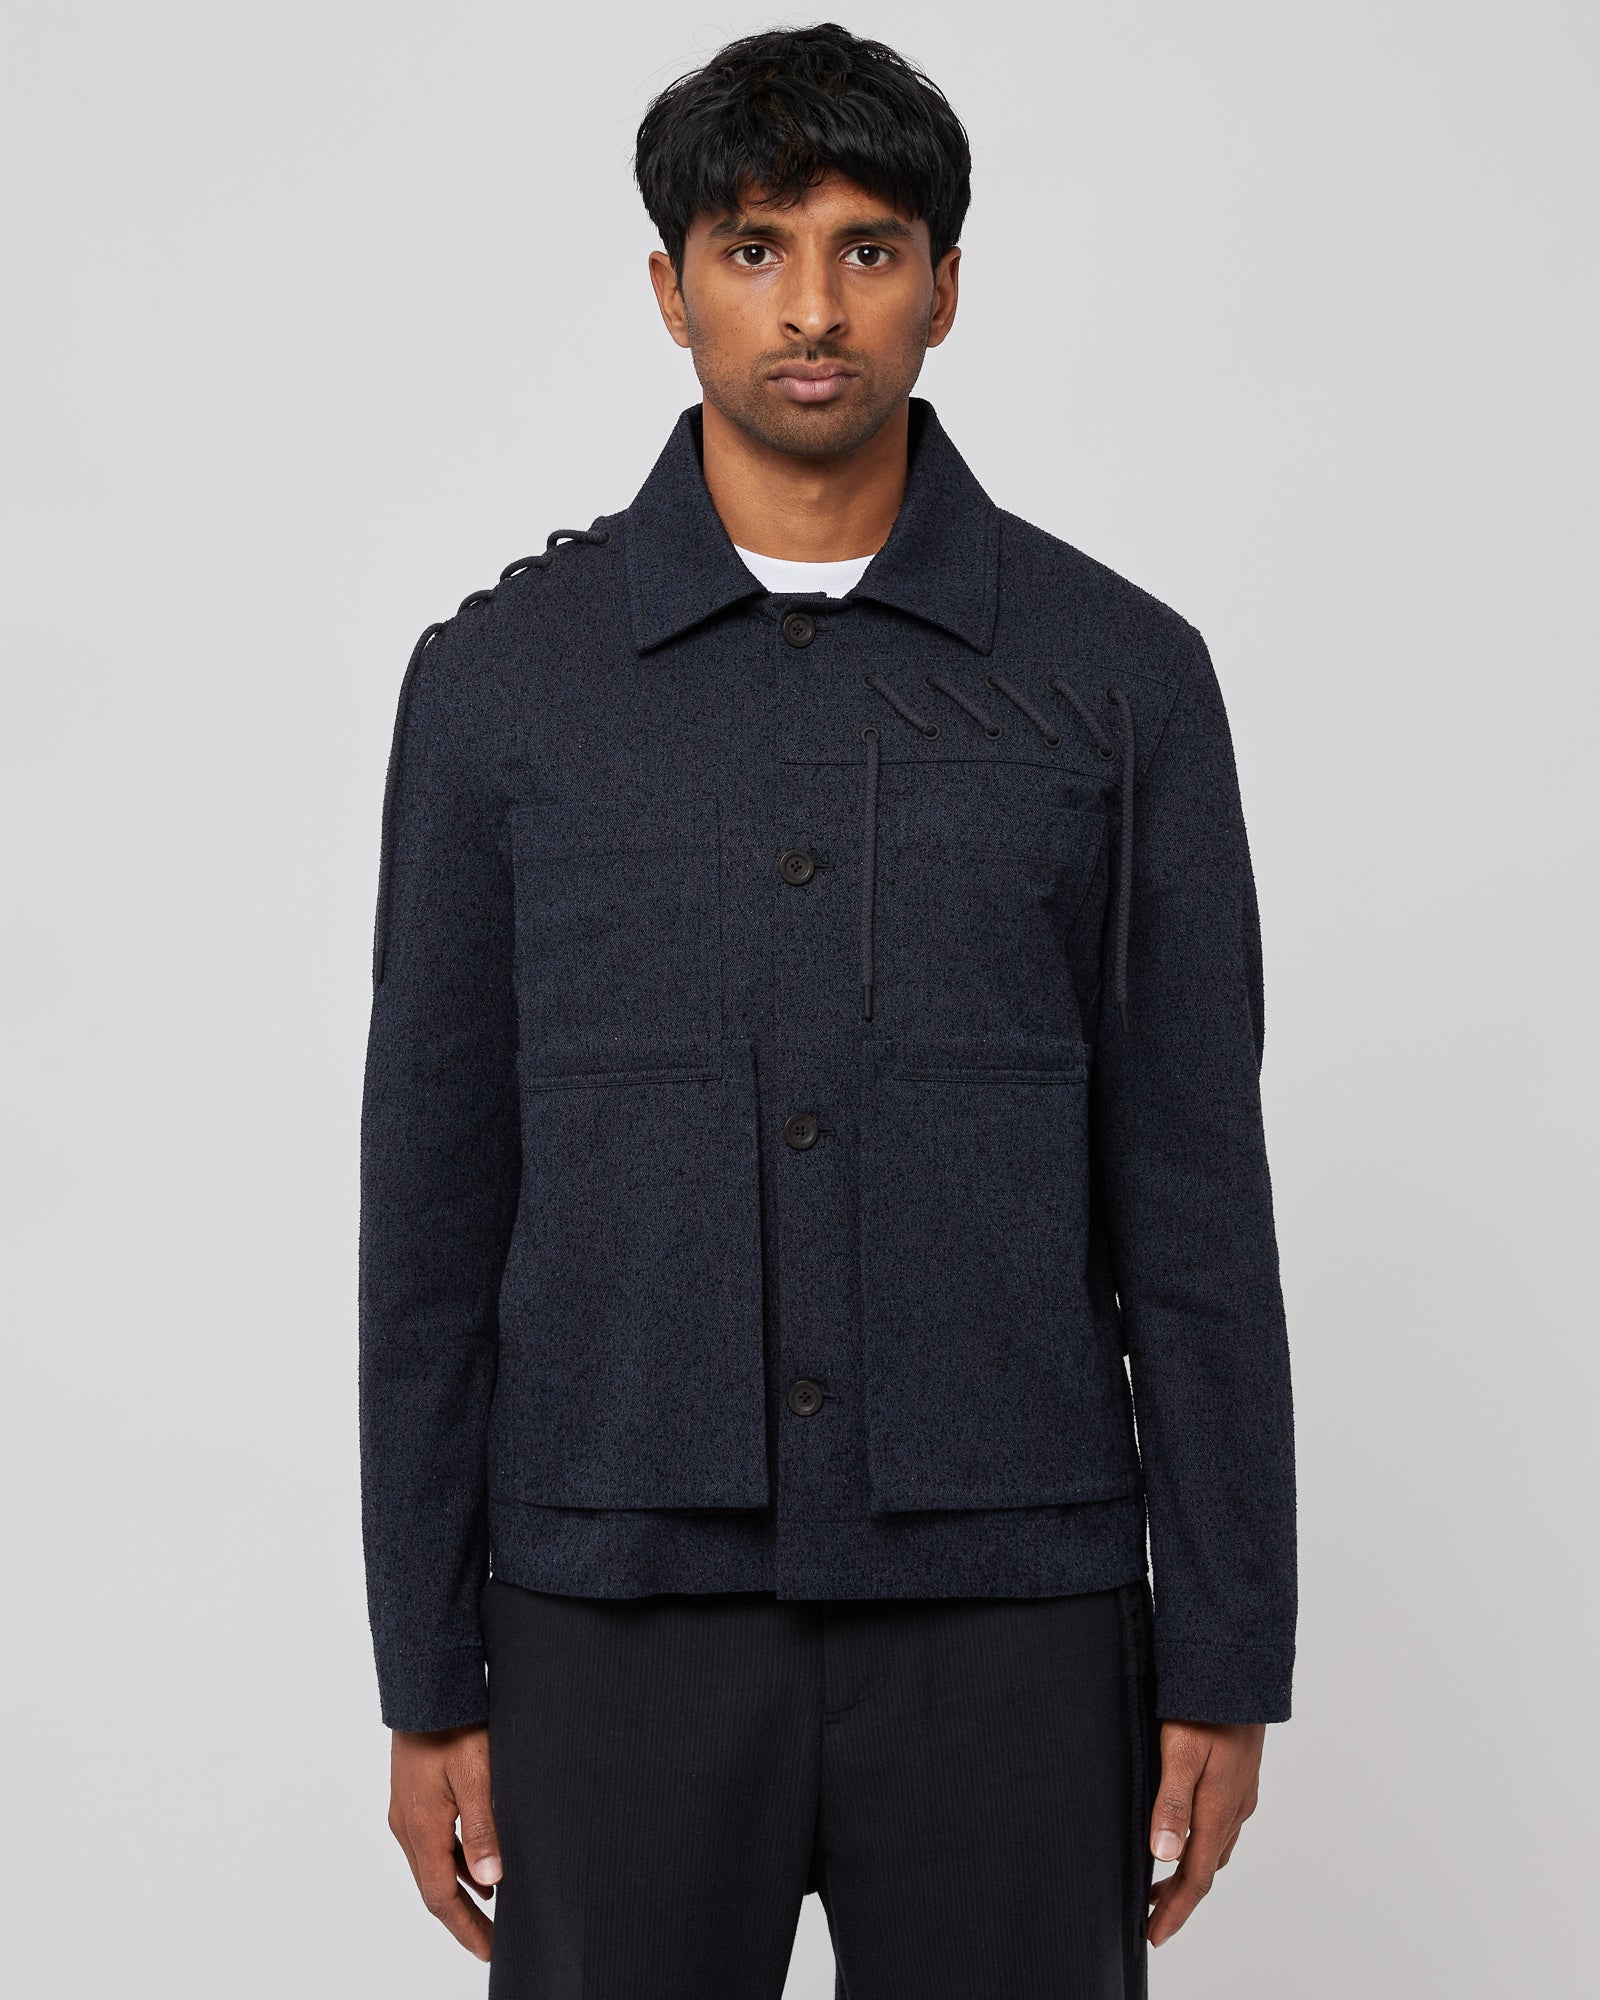 Laced Worker Jacket in Navy